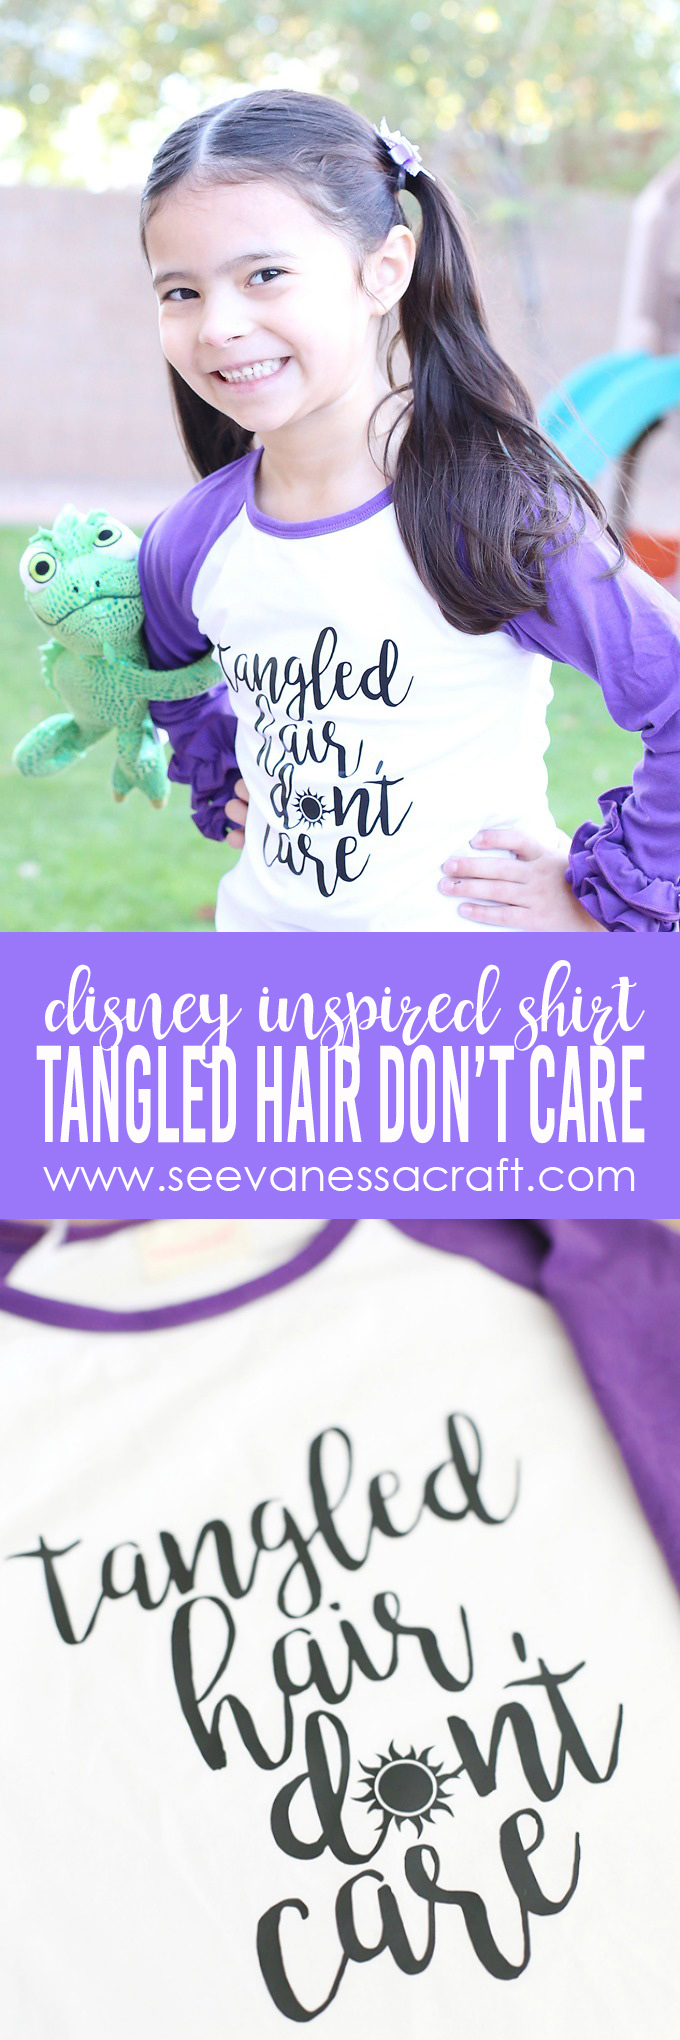 Tangled Hair Dont Care Disney Inspired Shirt copy